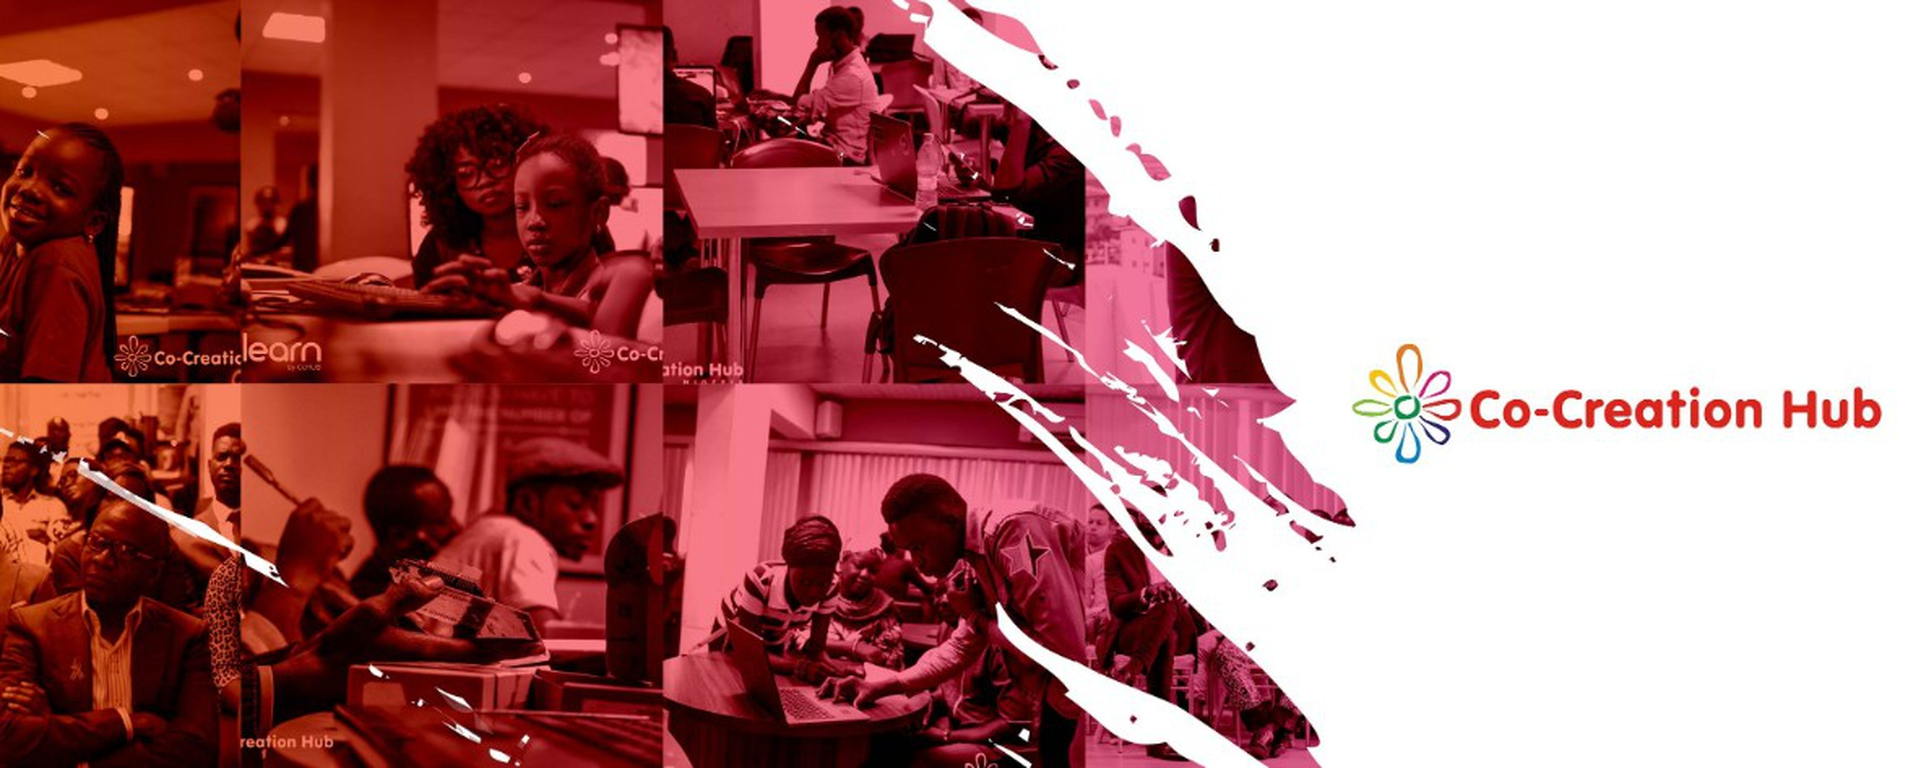 Co-creation Hub Nigeria (CcHUB) - Funding and Design Support for COVID-19 Projects Movemeback African initiative cover image